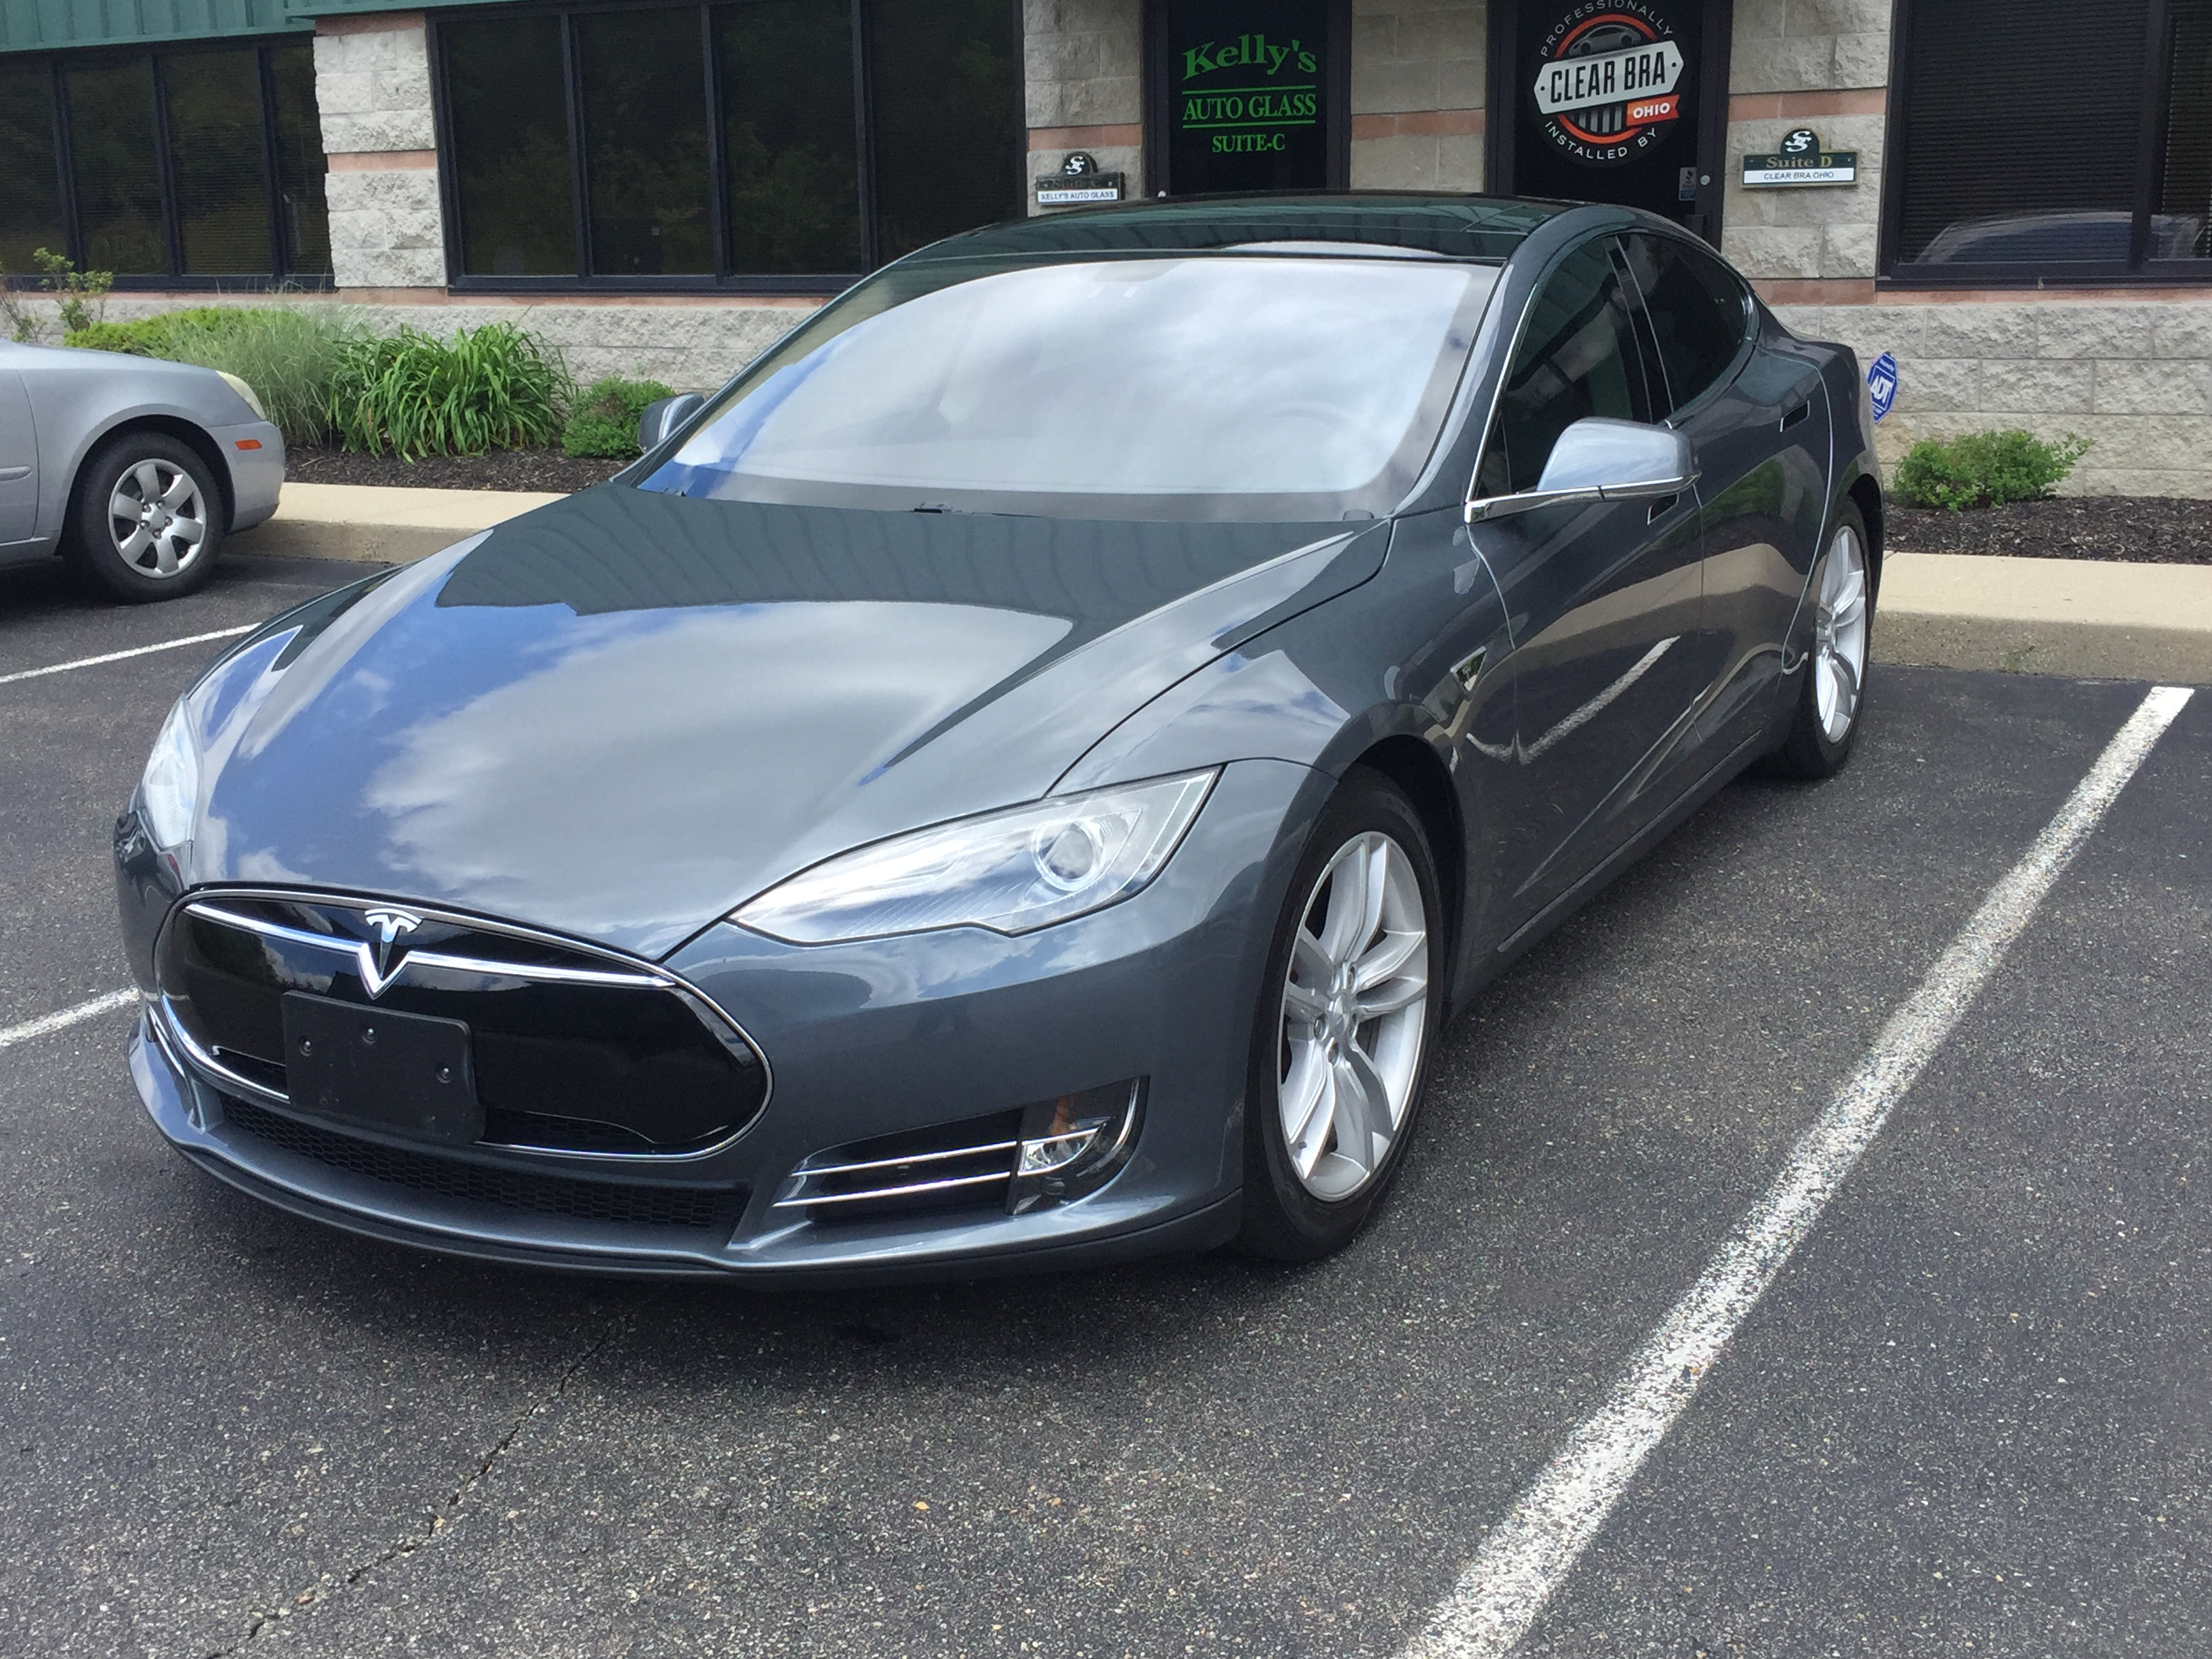 2013 tesla model s p85 panoramic roof xpel passport 9500ci w laser shifters extras. Black Bedroom Furniture Sets. Home Design Ideas